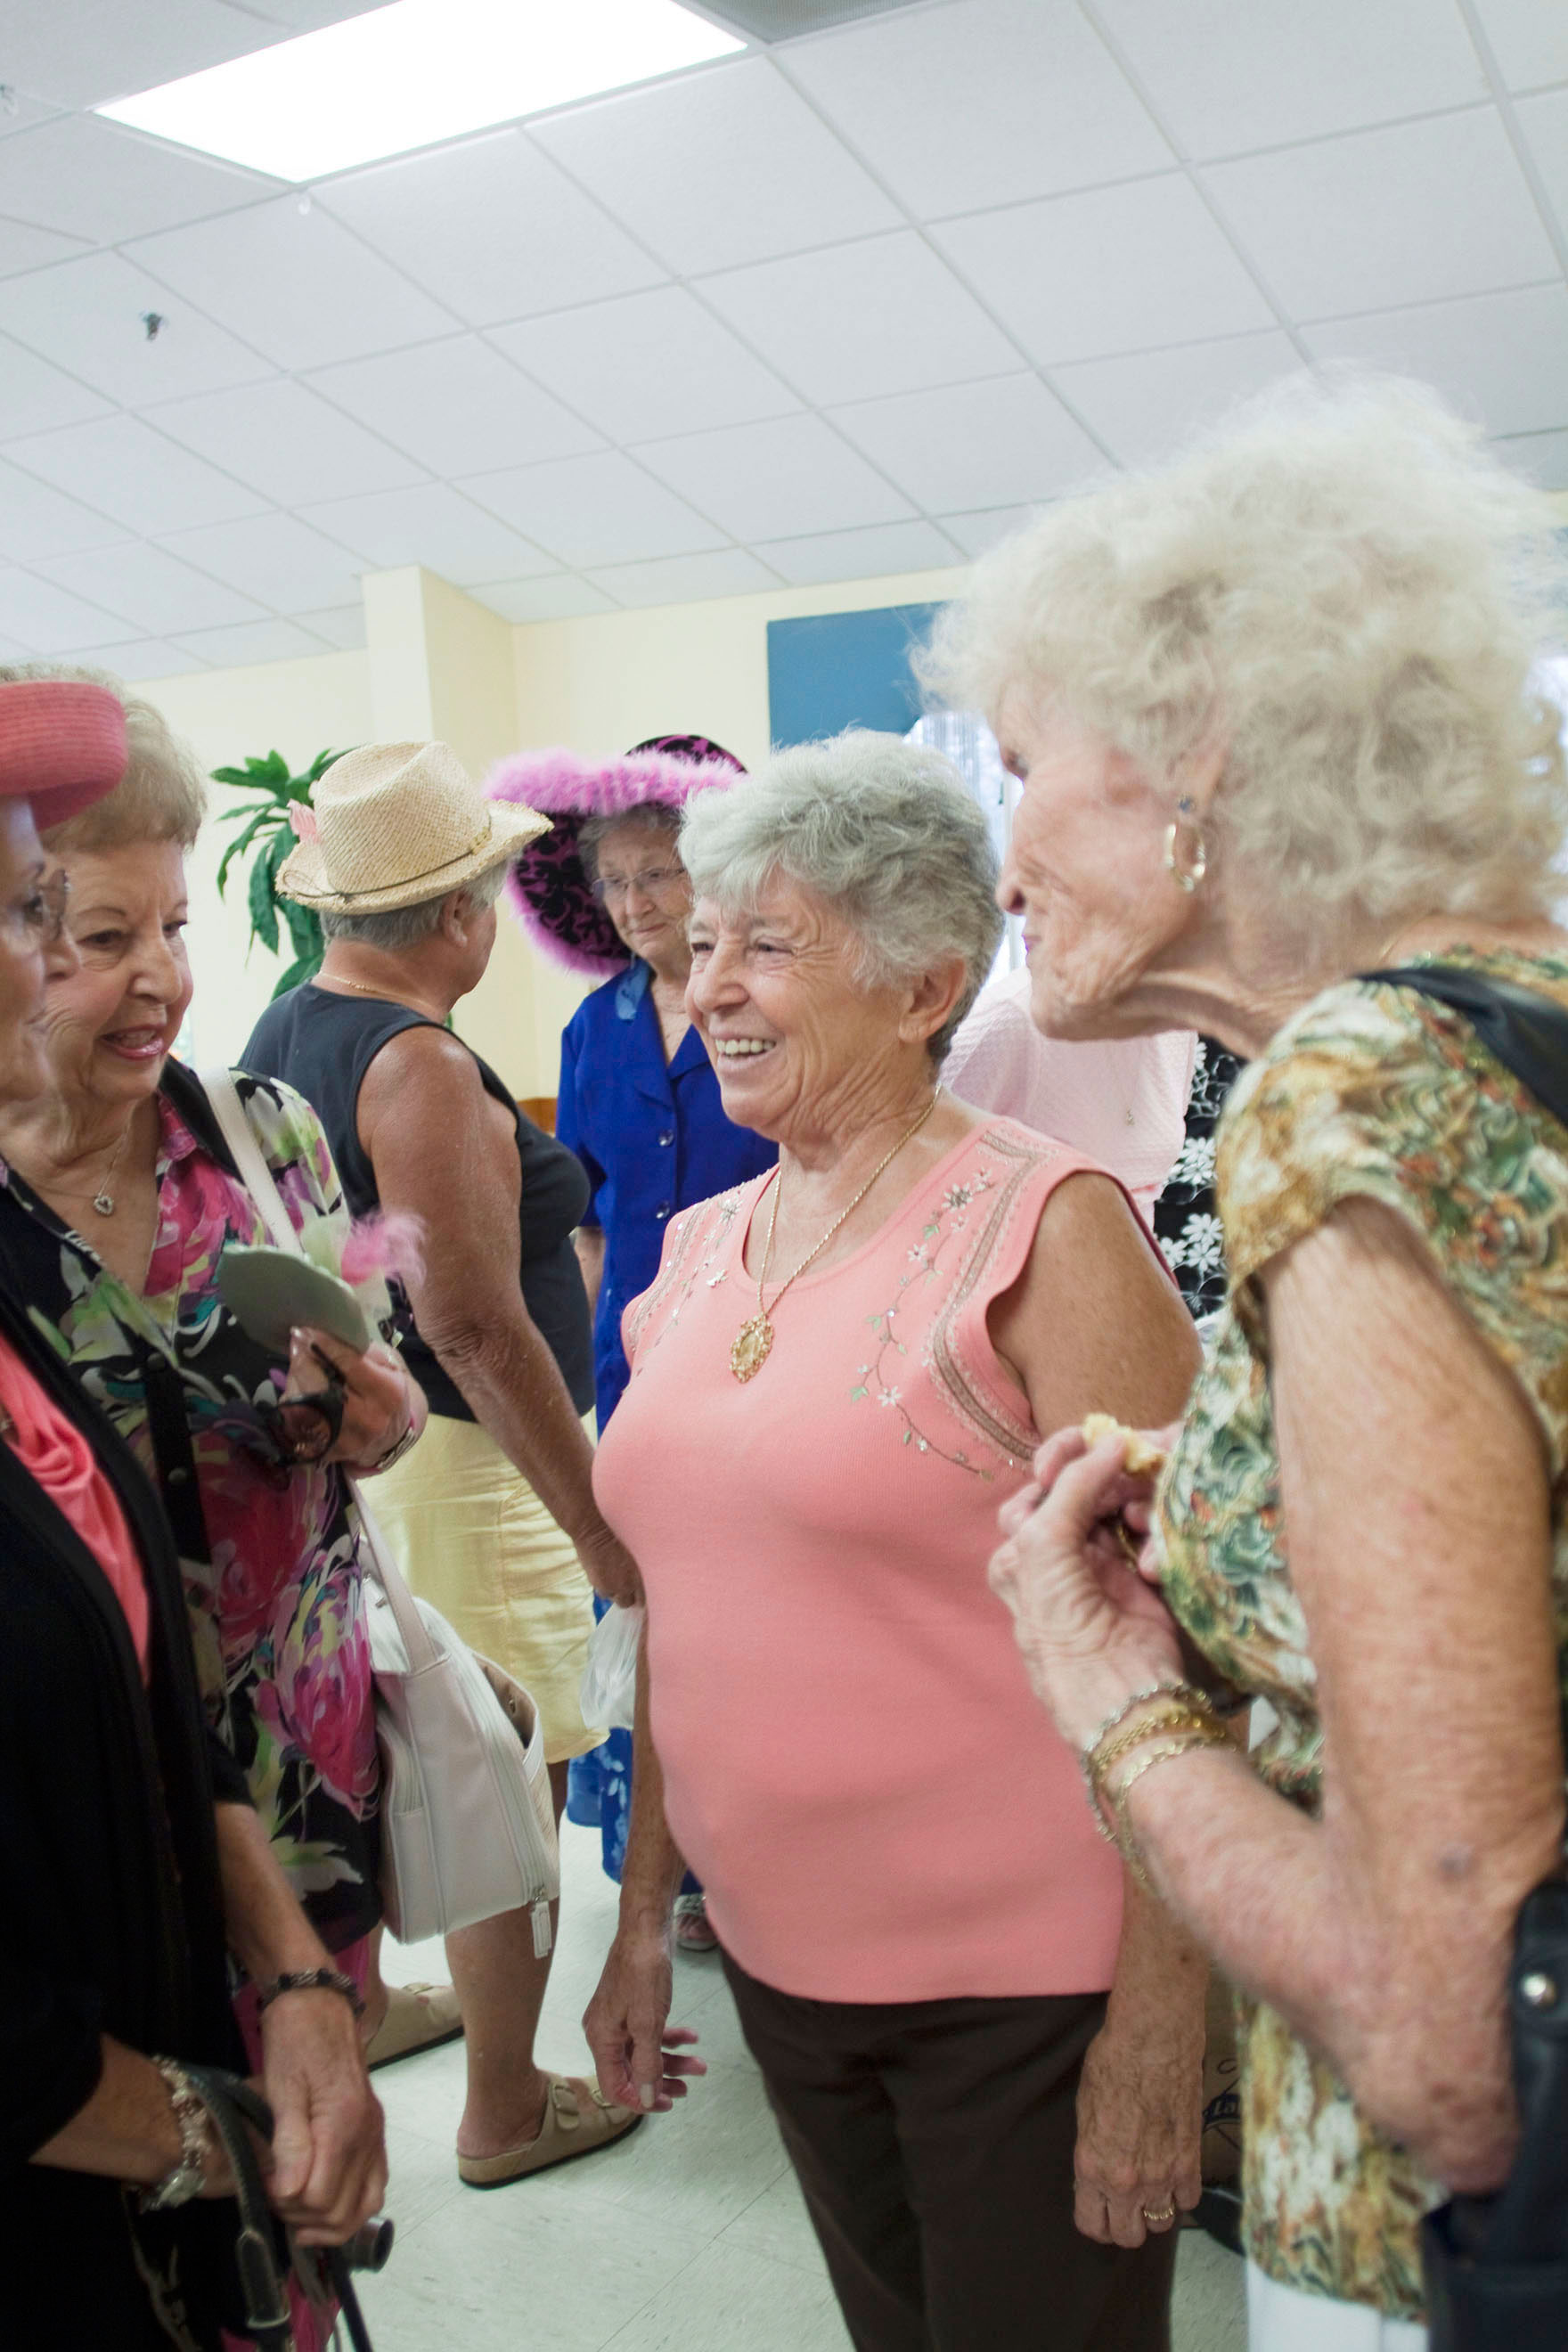 Pam Reno, former glove maker to Queen Elizabeth II, talks with friends at a tea in her honor at the Harbor Club of Bonita Springs